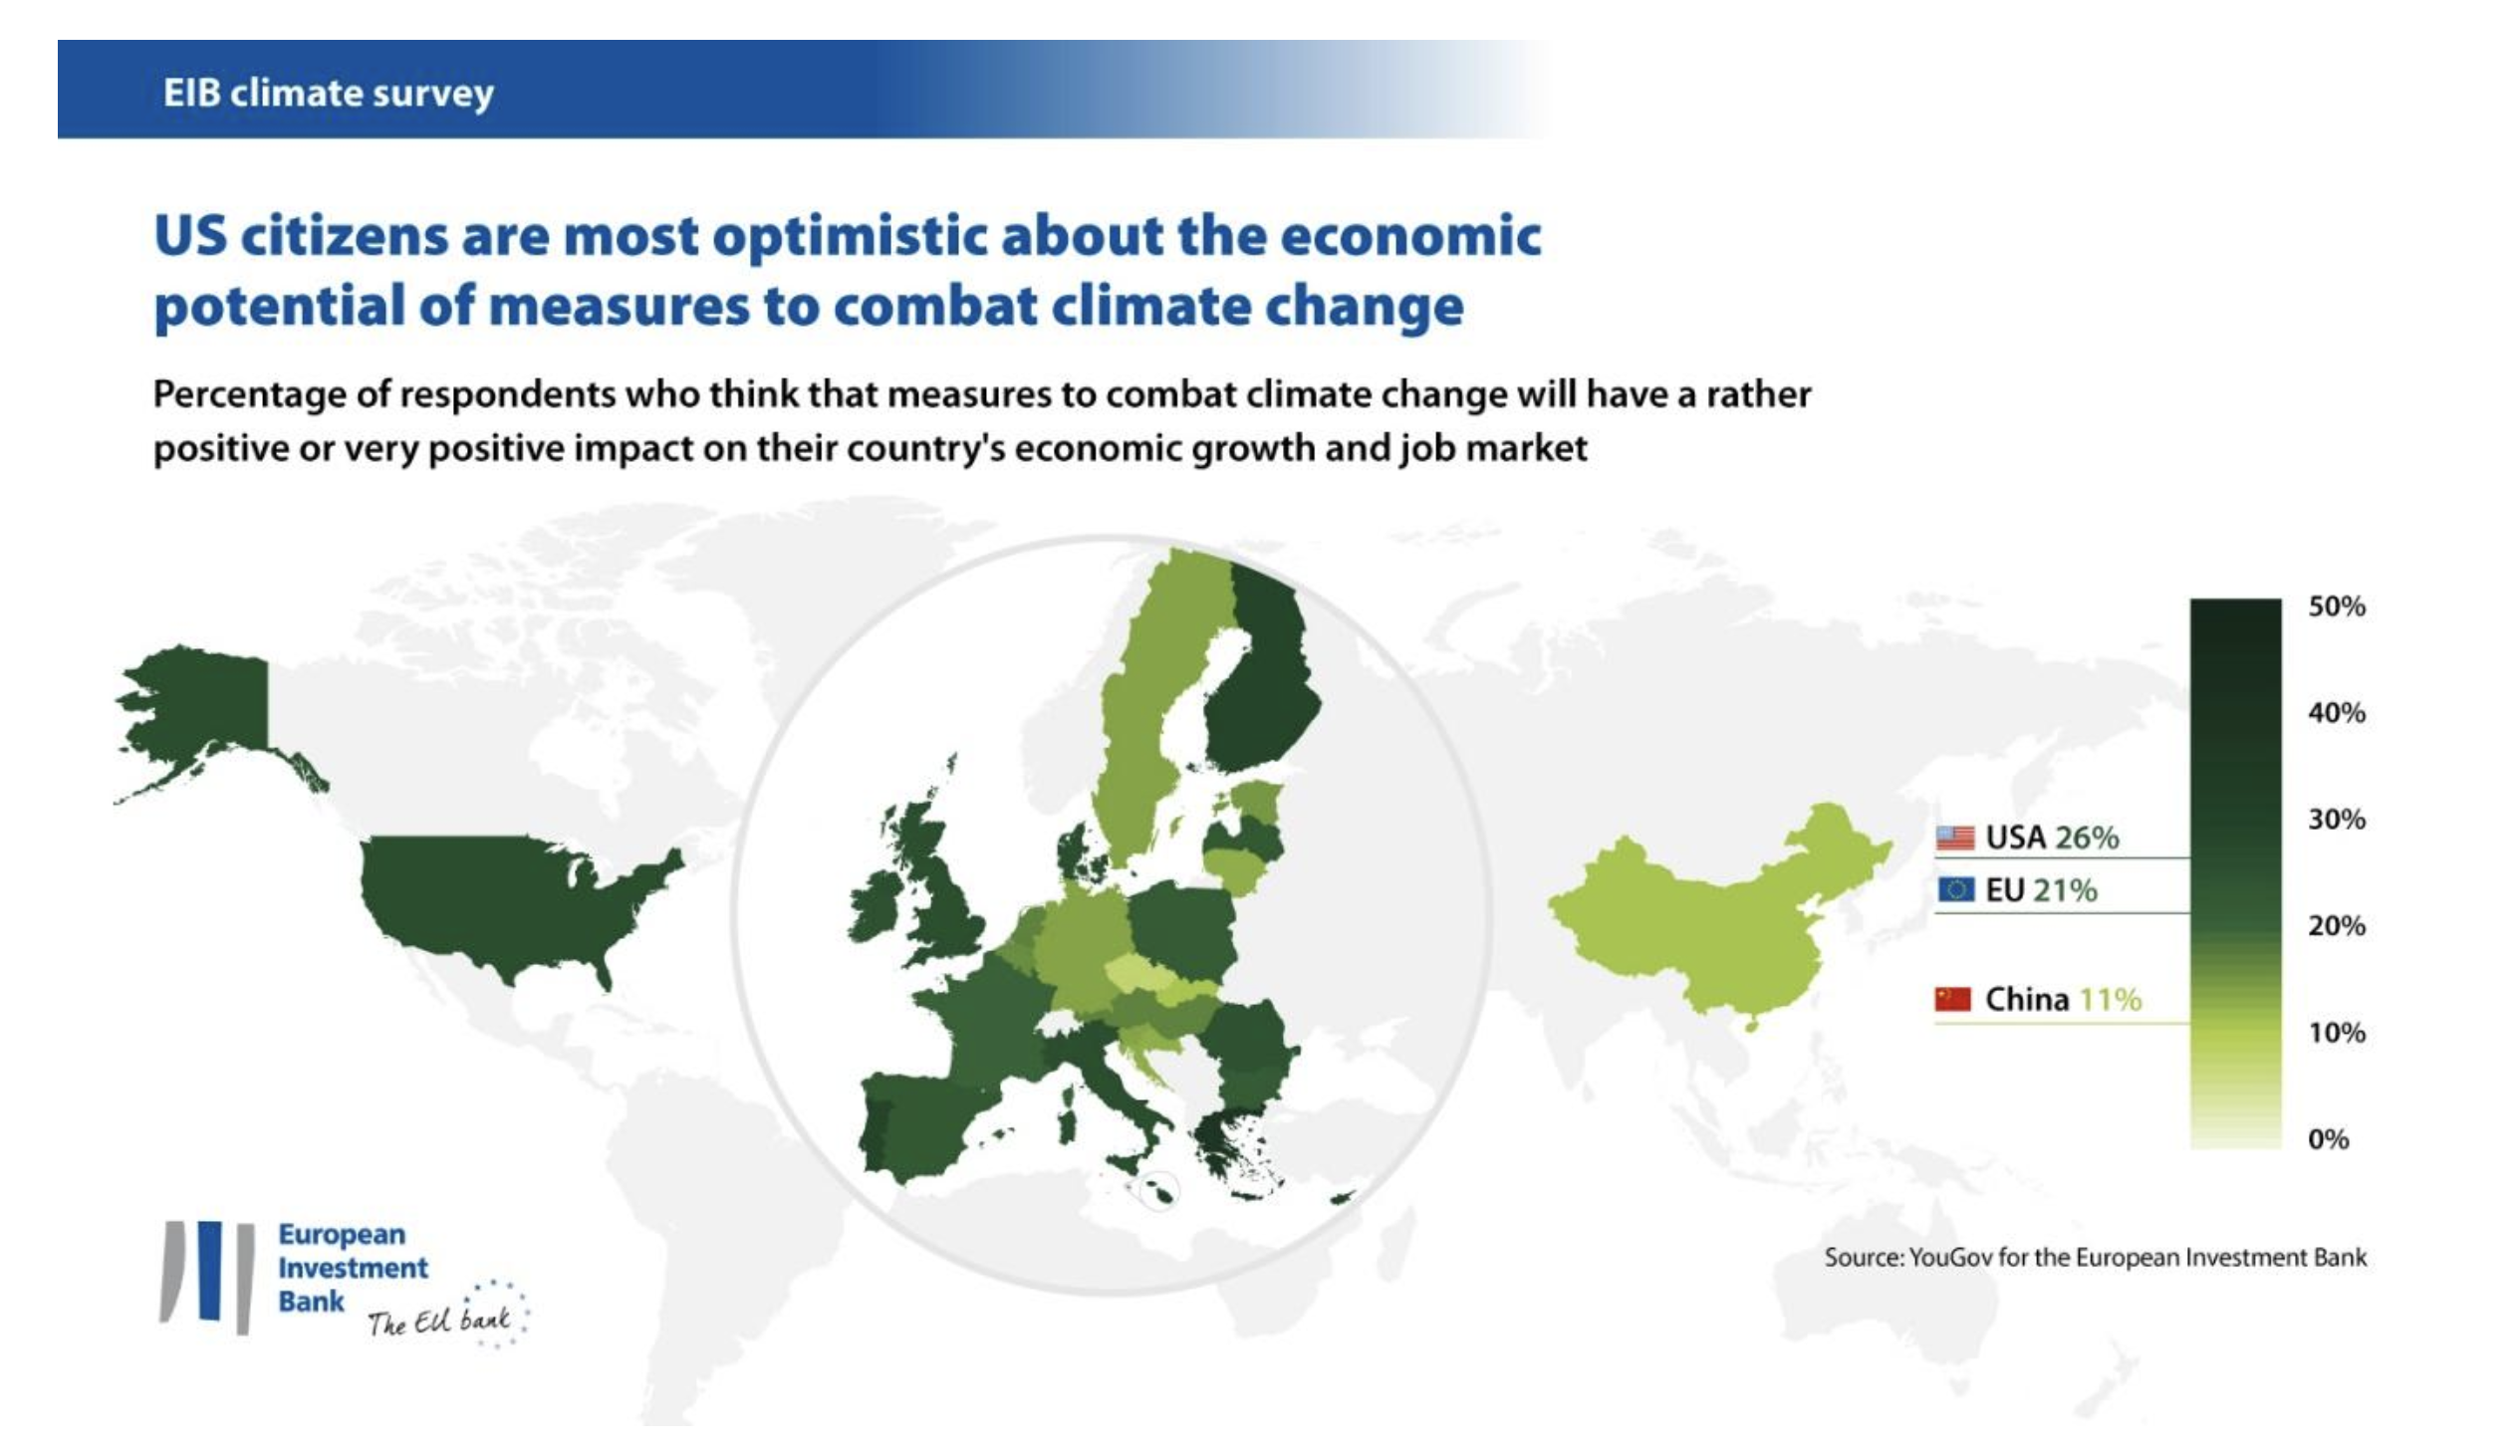 Americans are more positive than Europeans about the economic potential of fighting climate change